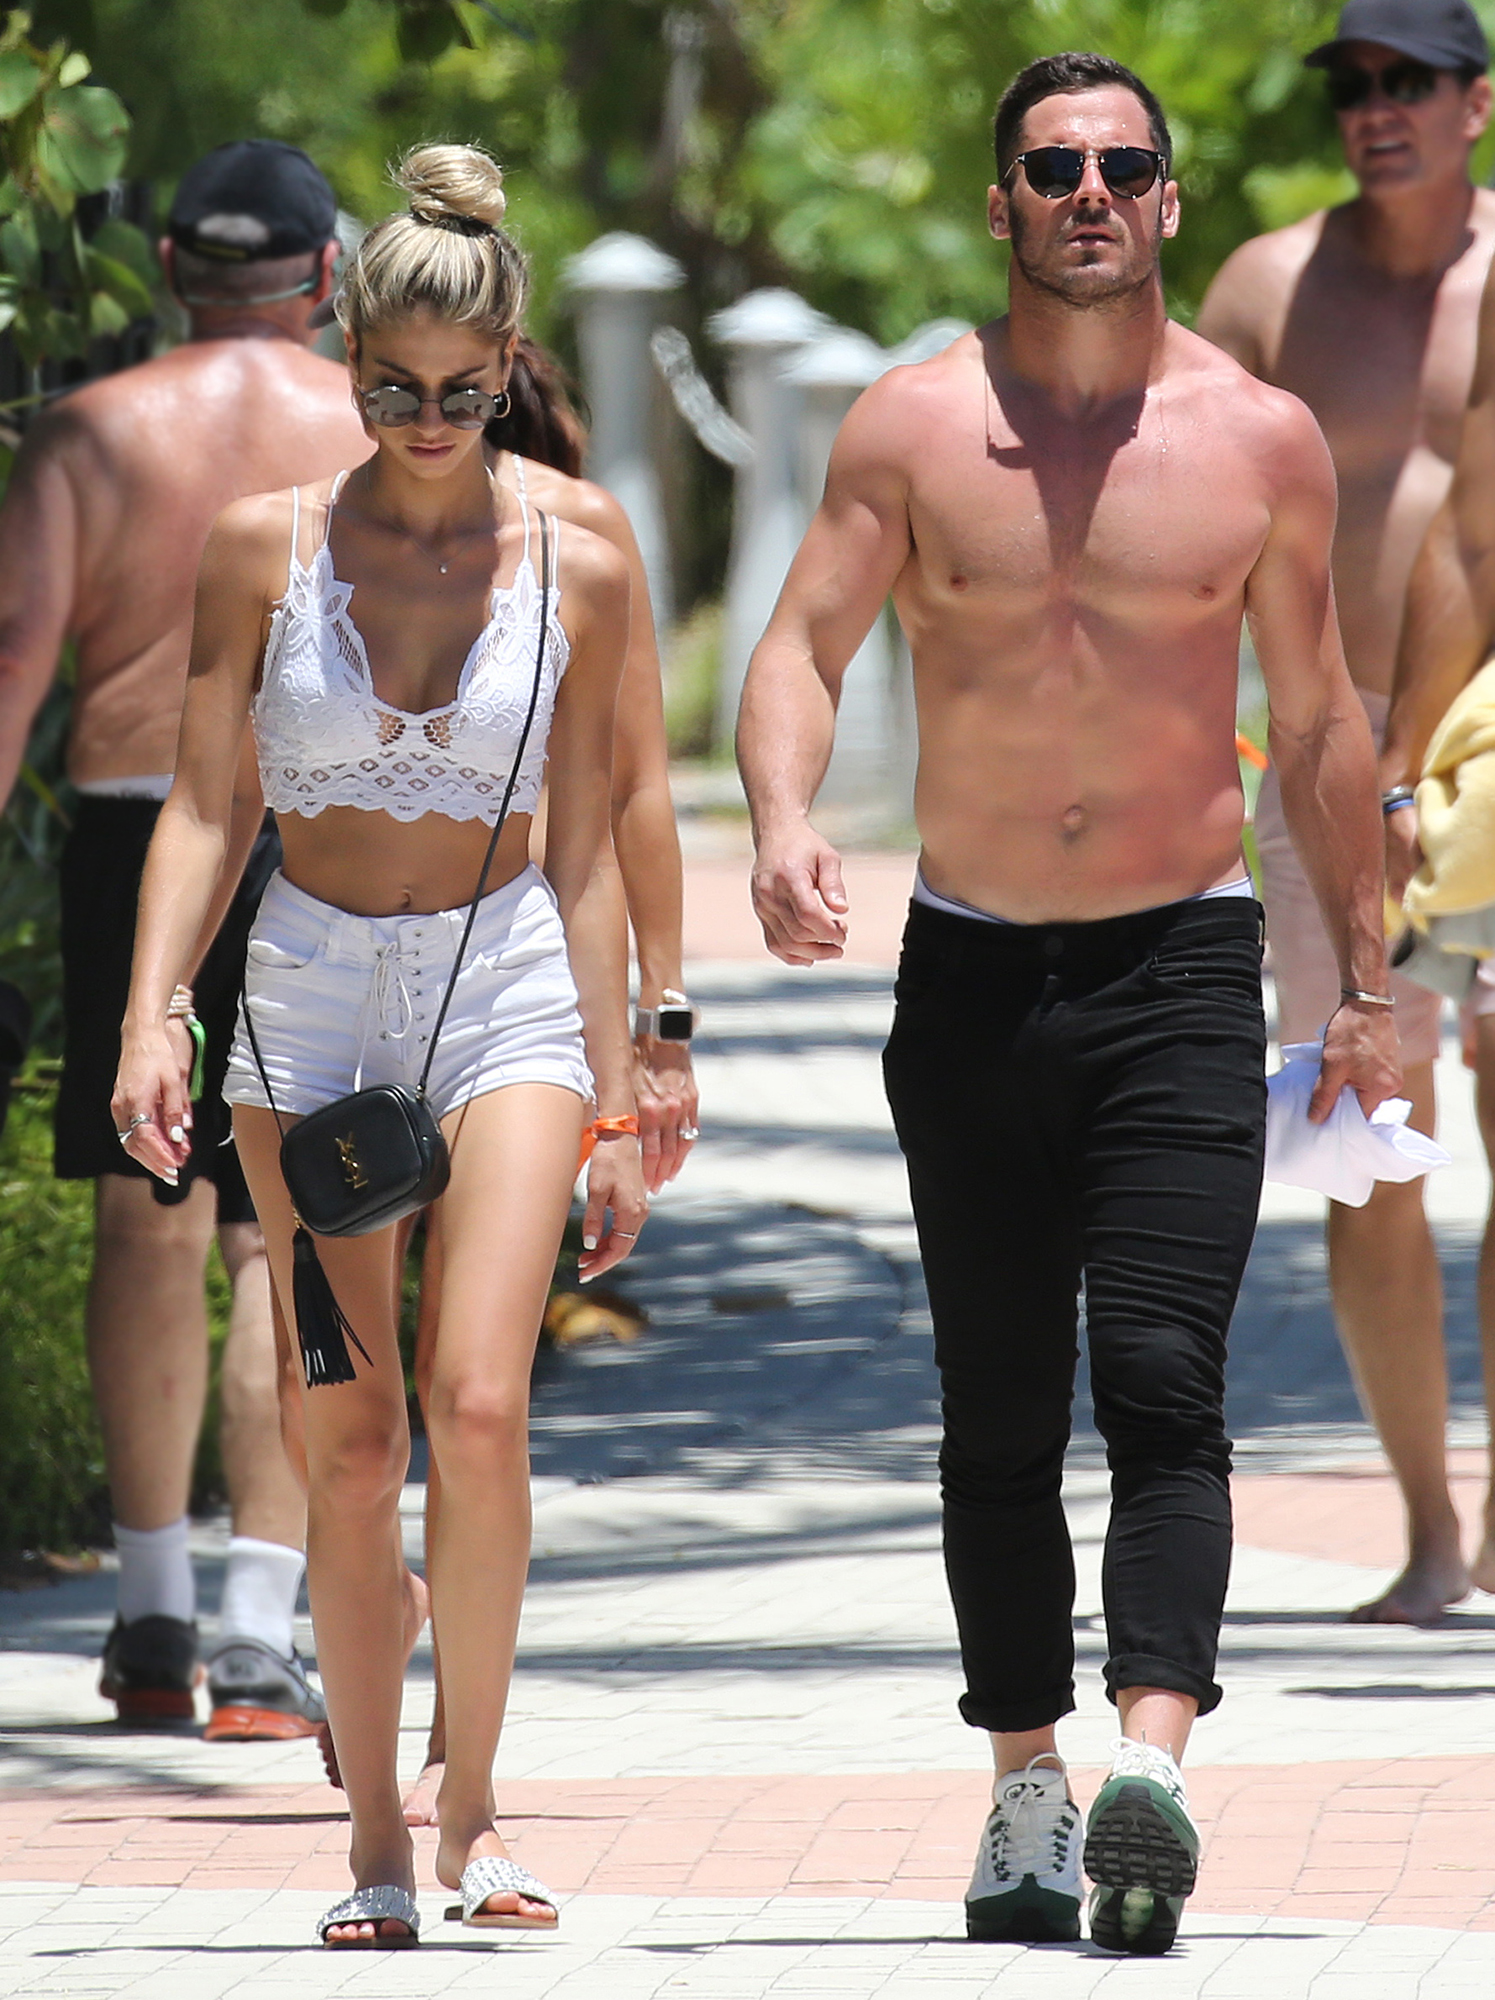 Danny Amendola With Mystery Blonde as Olivia Culpo Parties With Zedd - Danny Amendola takes a walk with a mystery blonde after having breakfast together in Miami on May 12, 2019.